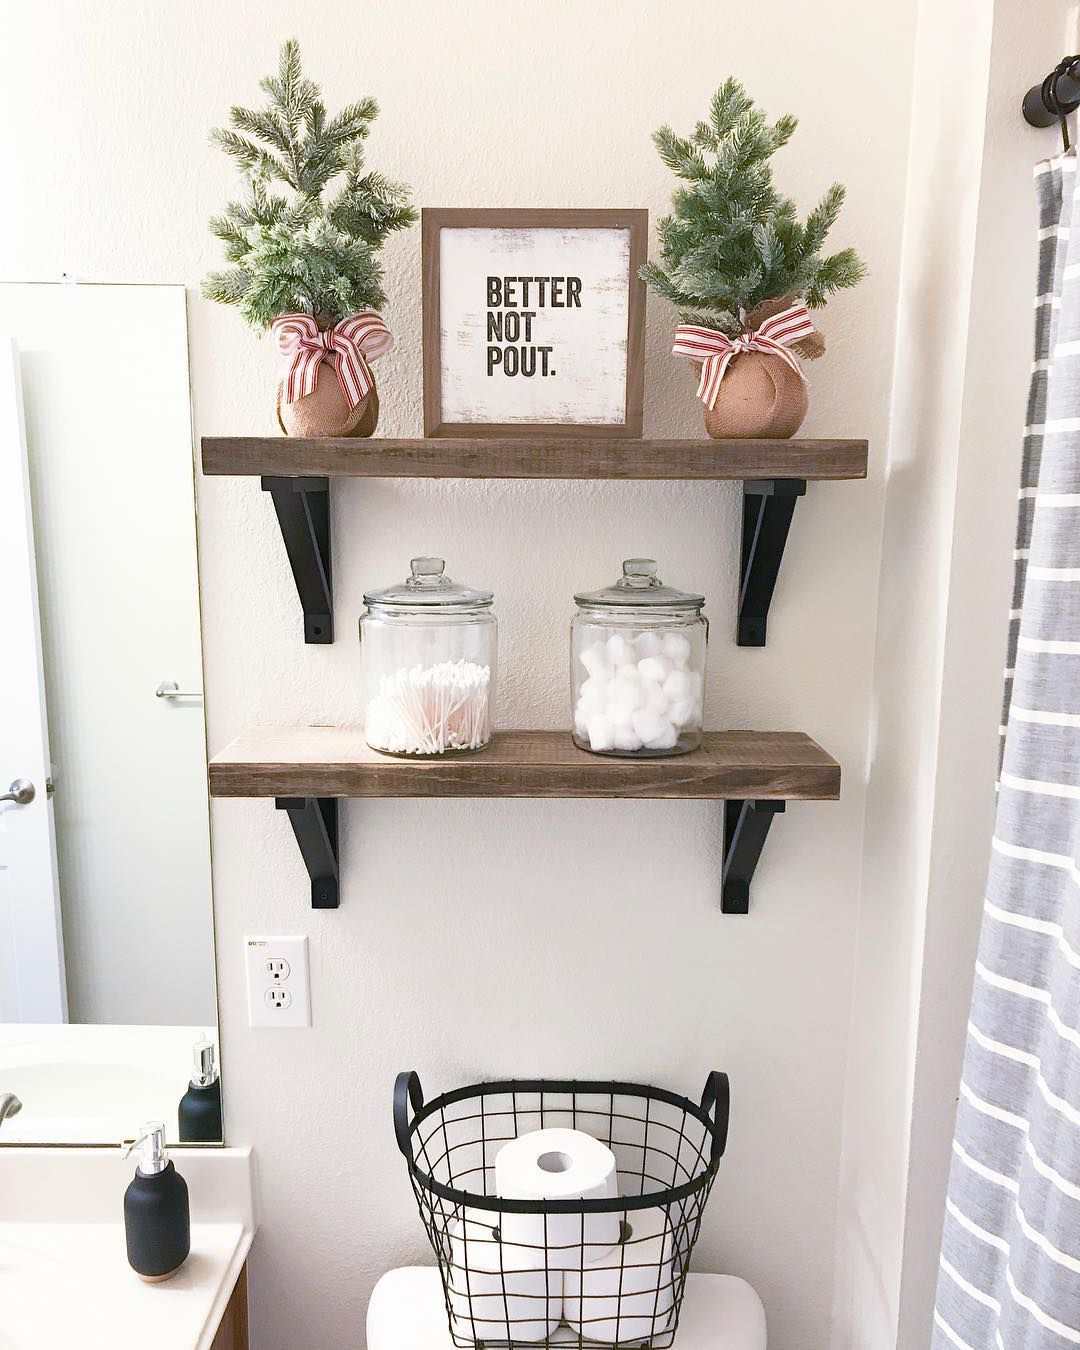 Christmas Decor on the Above Toilet Shelving in Bathroom via @simply_sweet_designs #ChristmasDecor #ChristmasBathroom